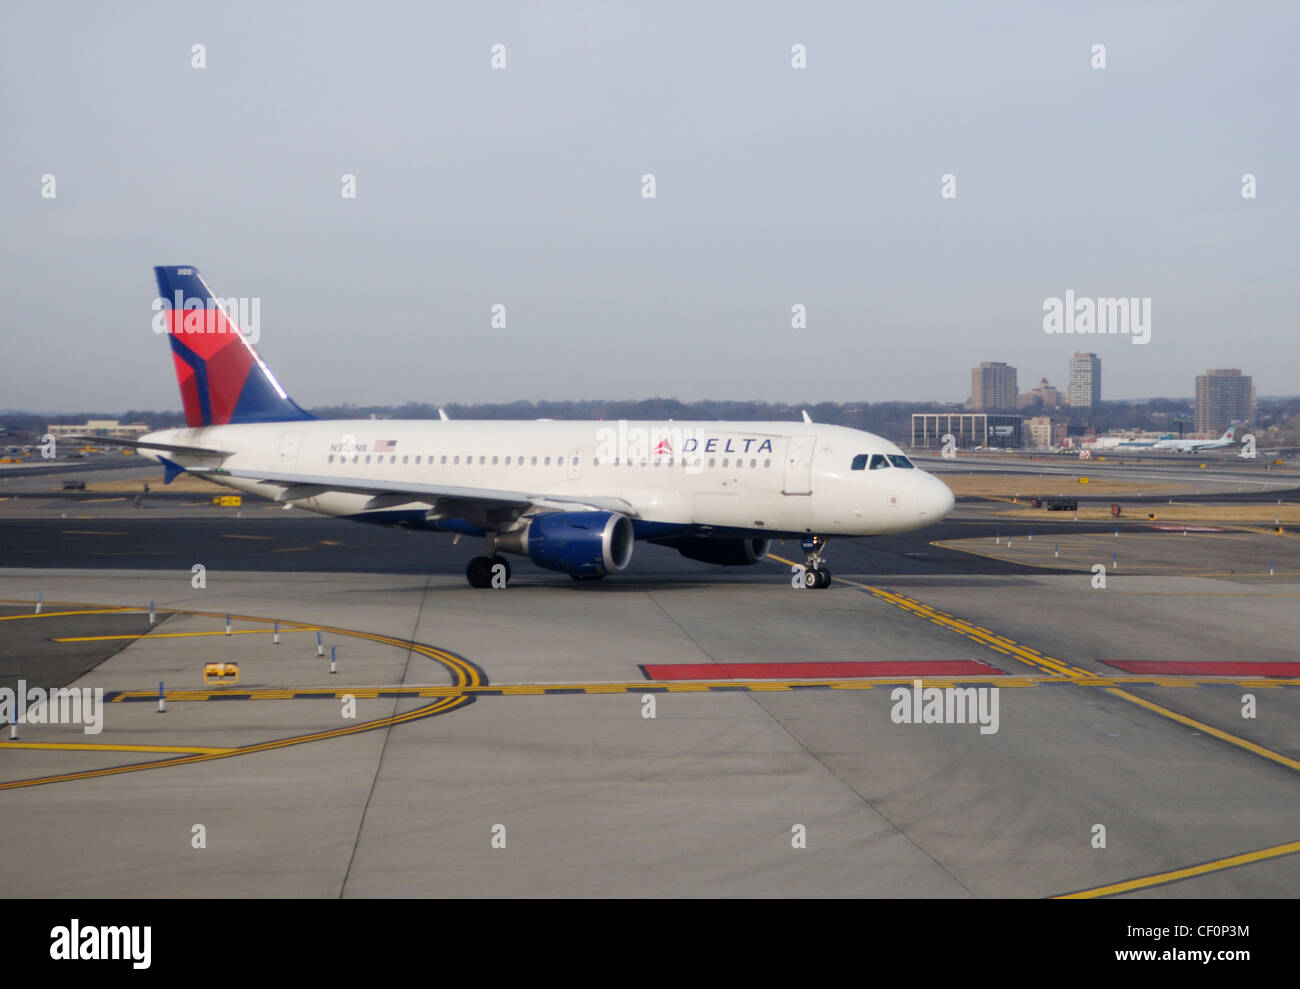 Commercial airliner on runway at Newark Liberty International Airport, Newark, NJ - Stock Image